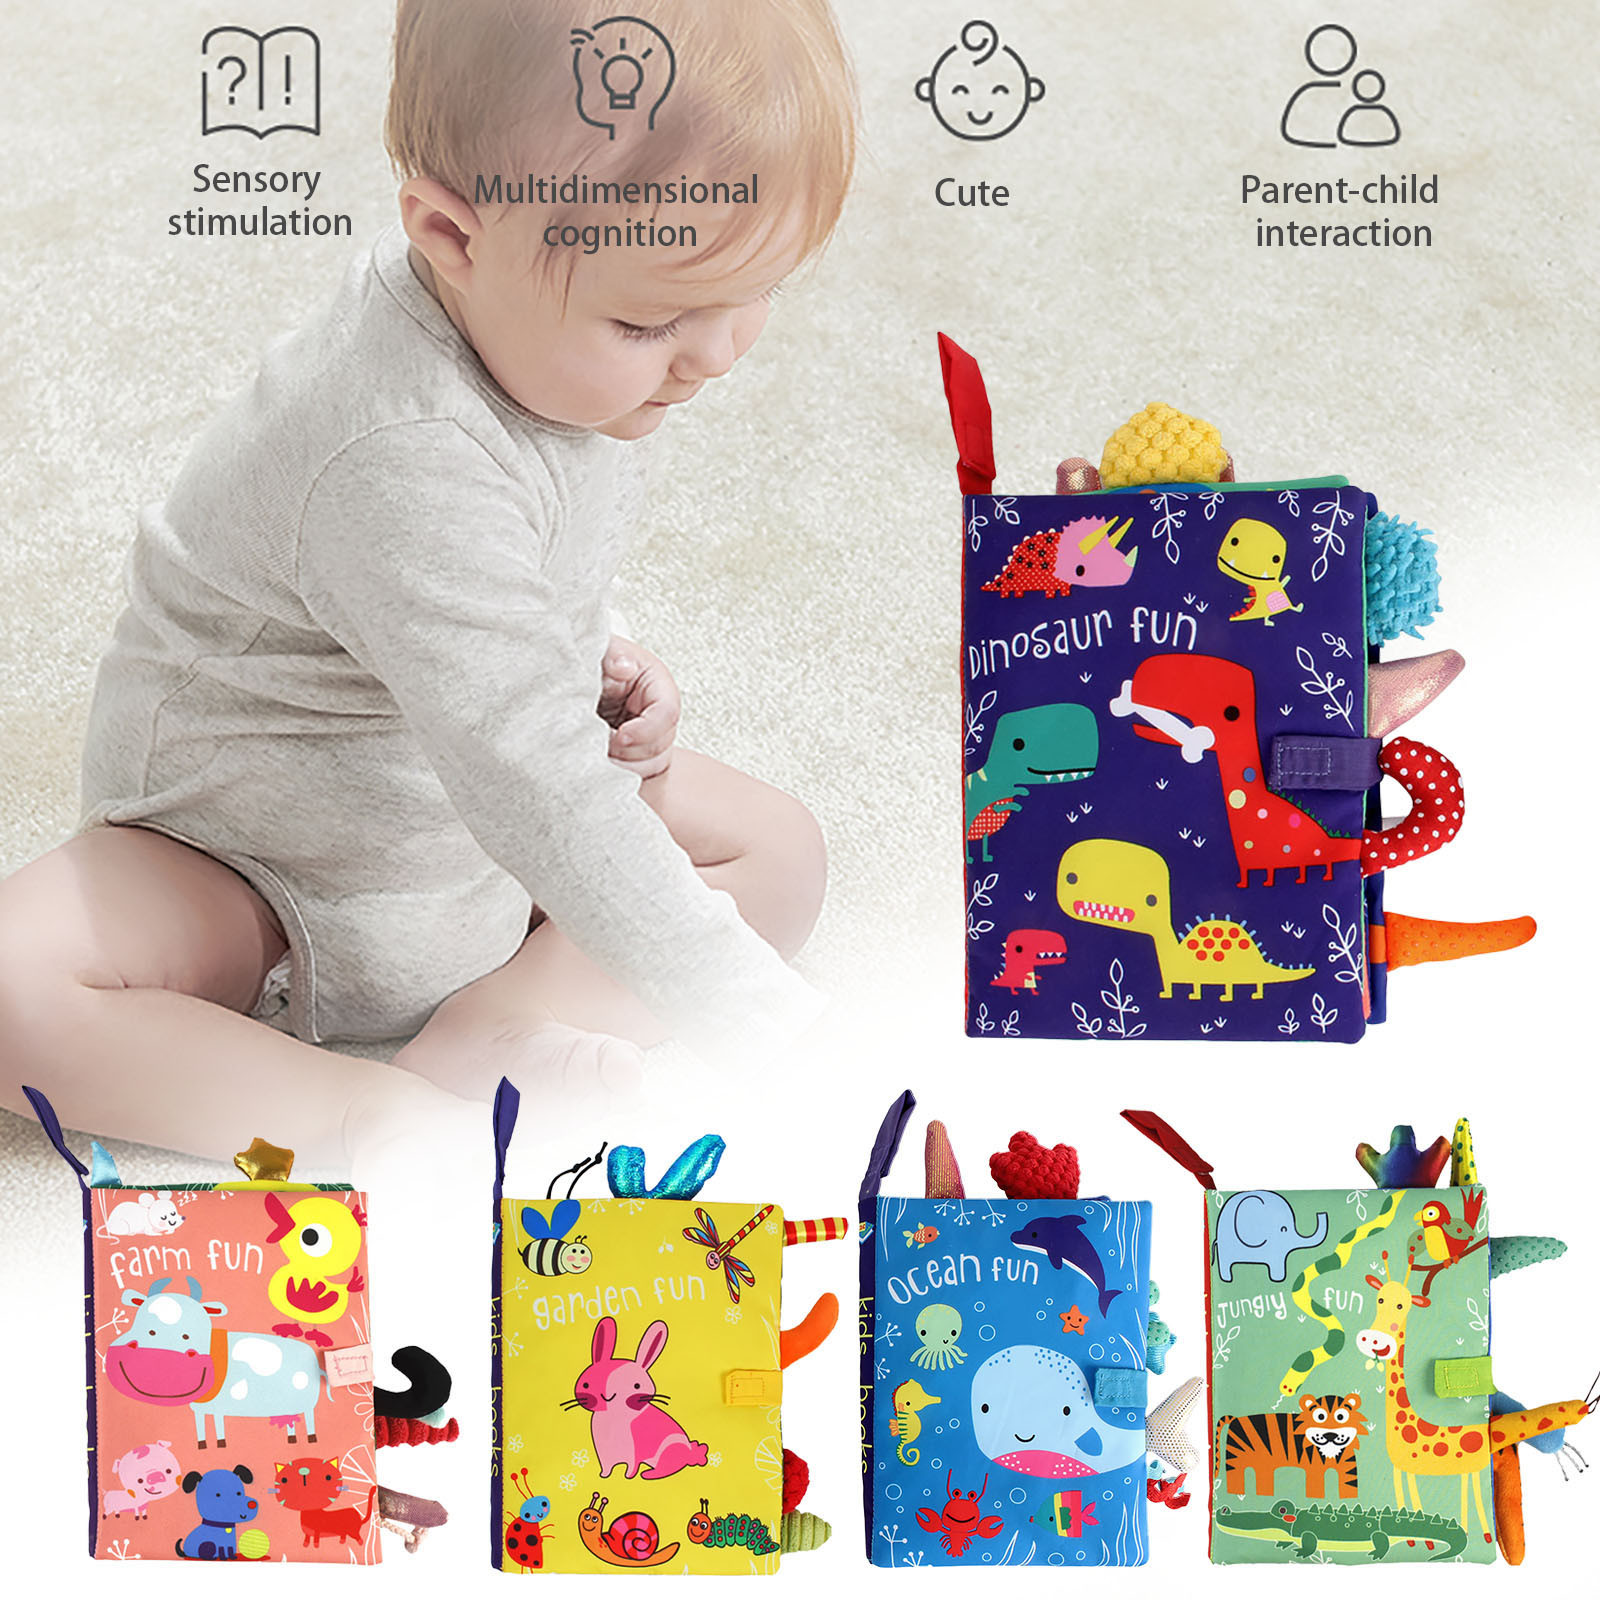 toys for boys children 3D Animal Tails Cloth Book Baby Puzzle Educational Learning Toy funny gifts подарки на новый год#K4